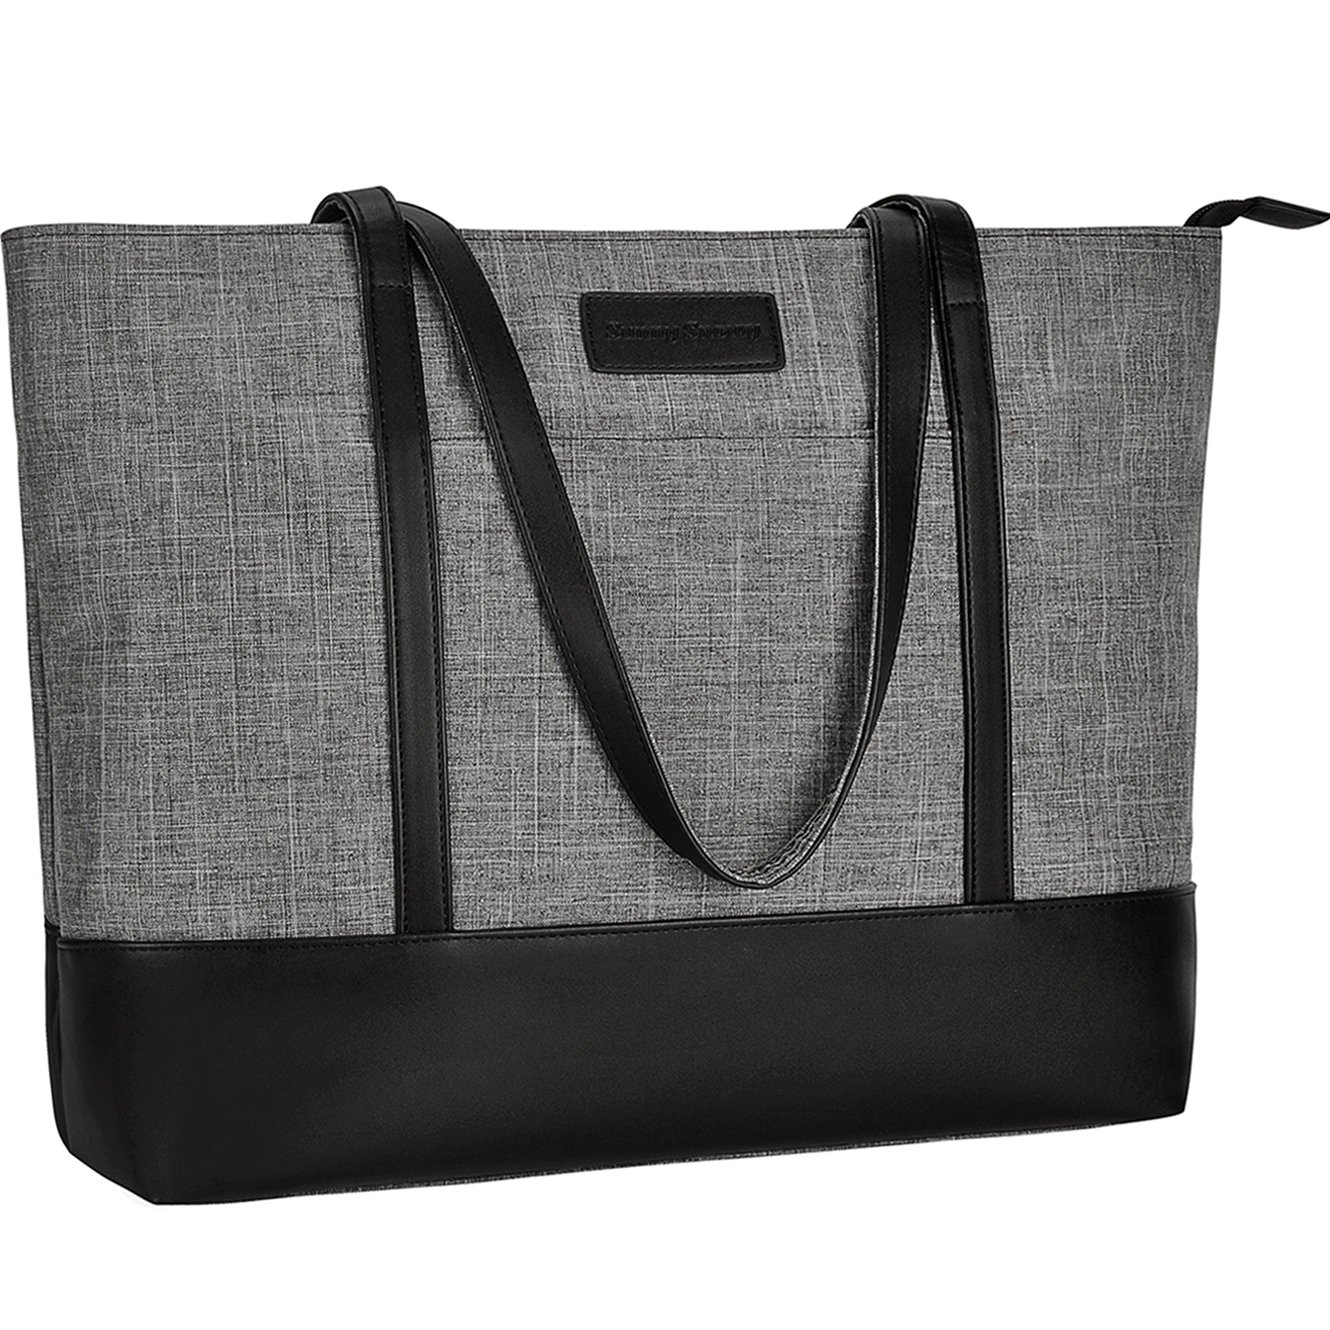 Laptop Bag,Multi Pockets Large Laptop Tote Bag,15.6 Inch Laptop Business Tote Bag for Women[gray]